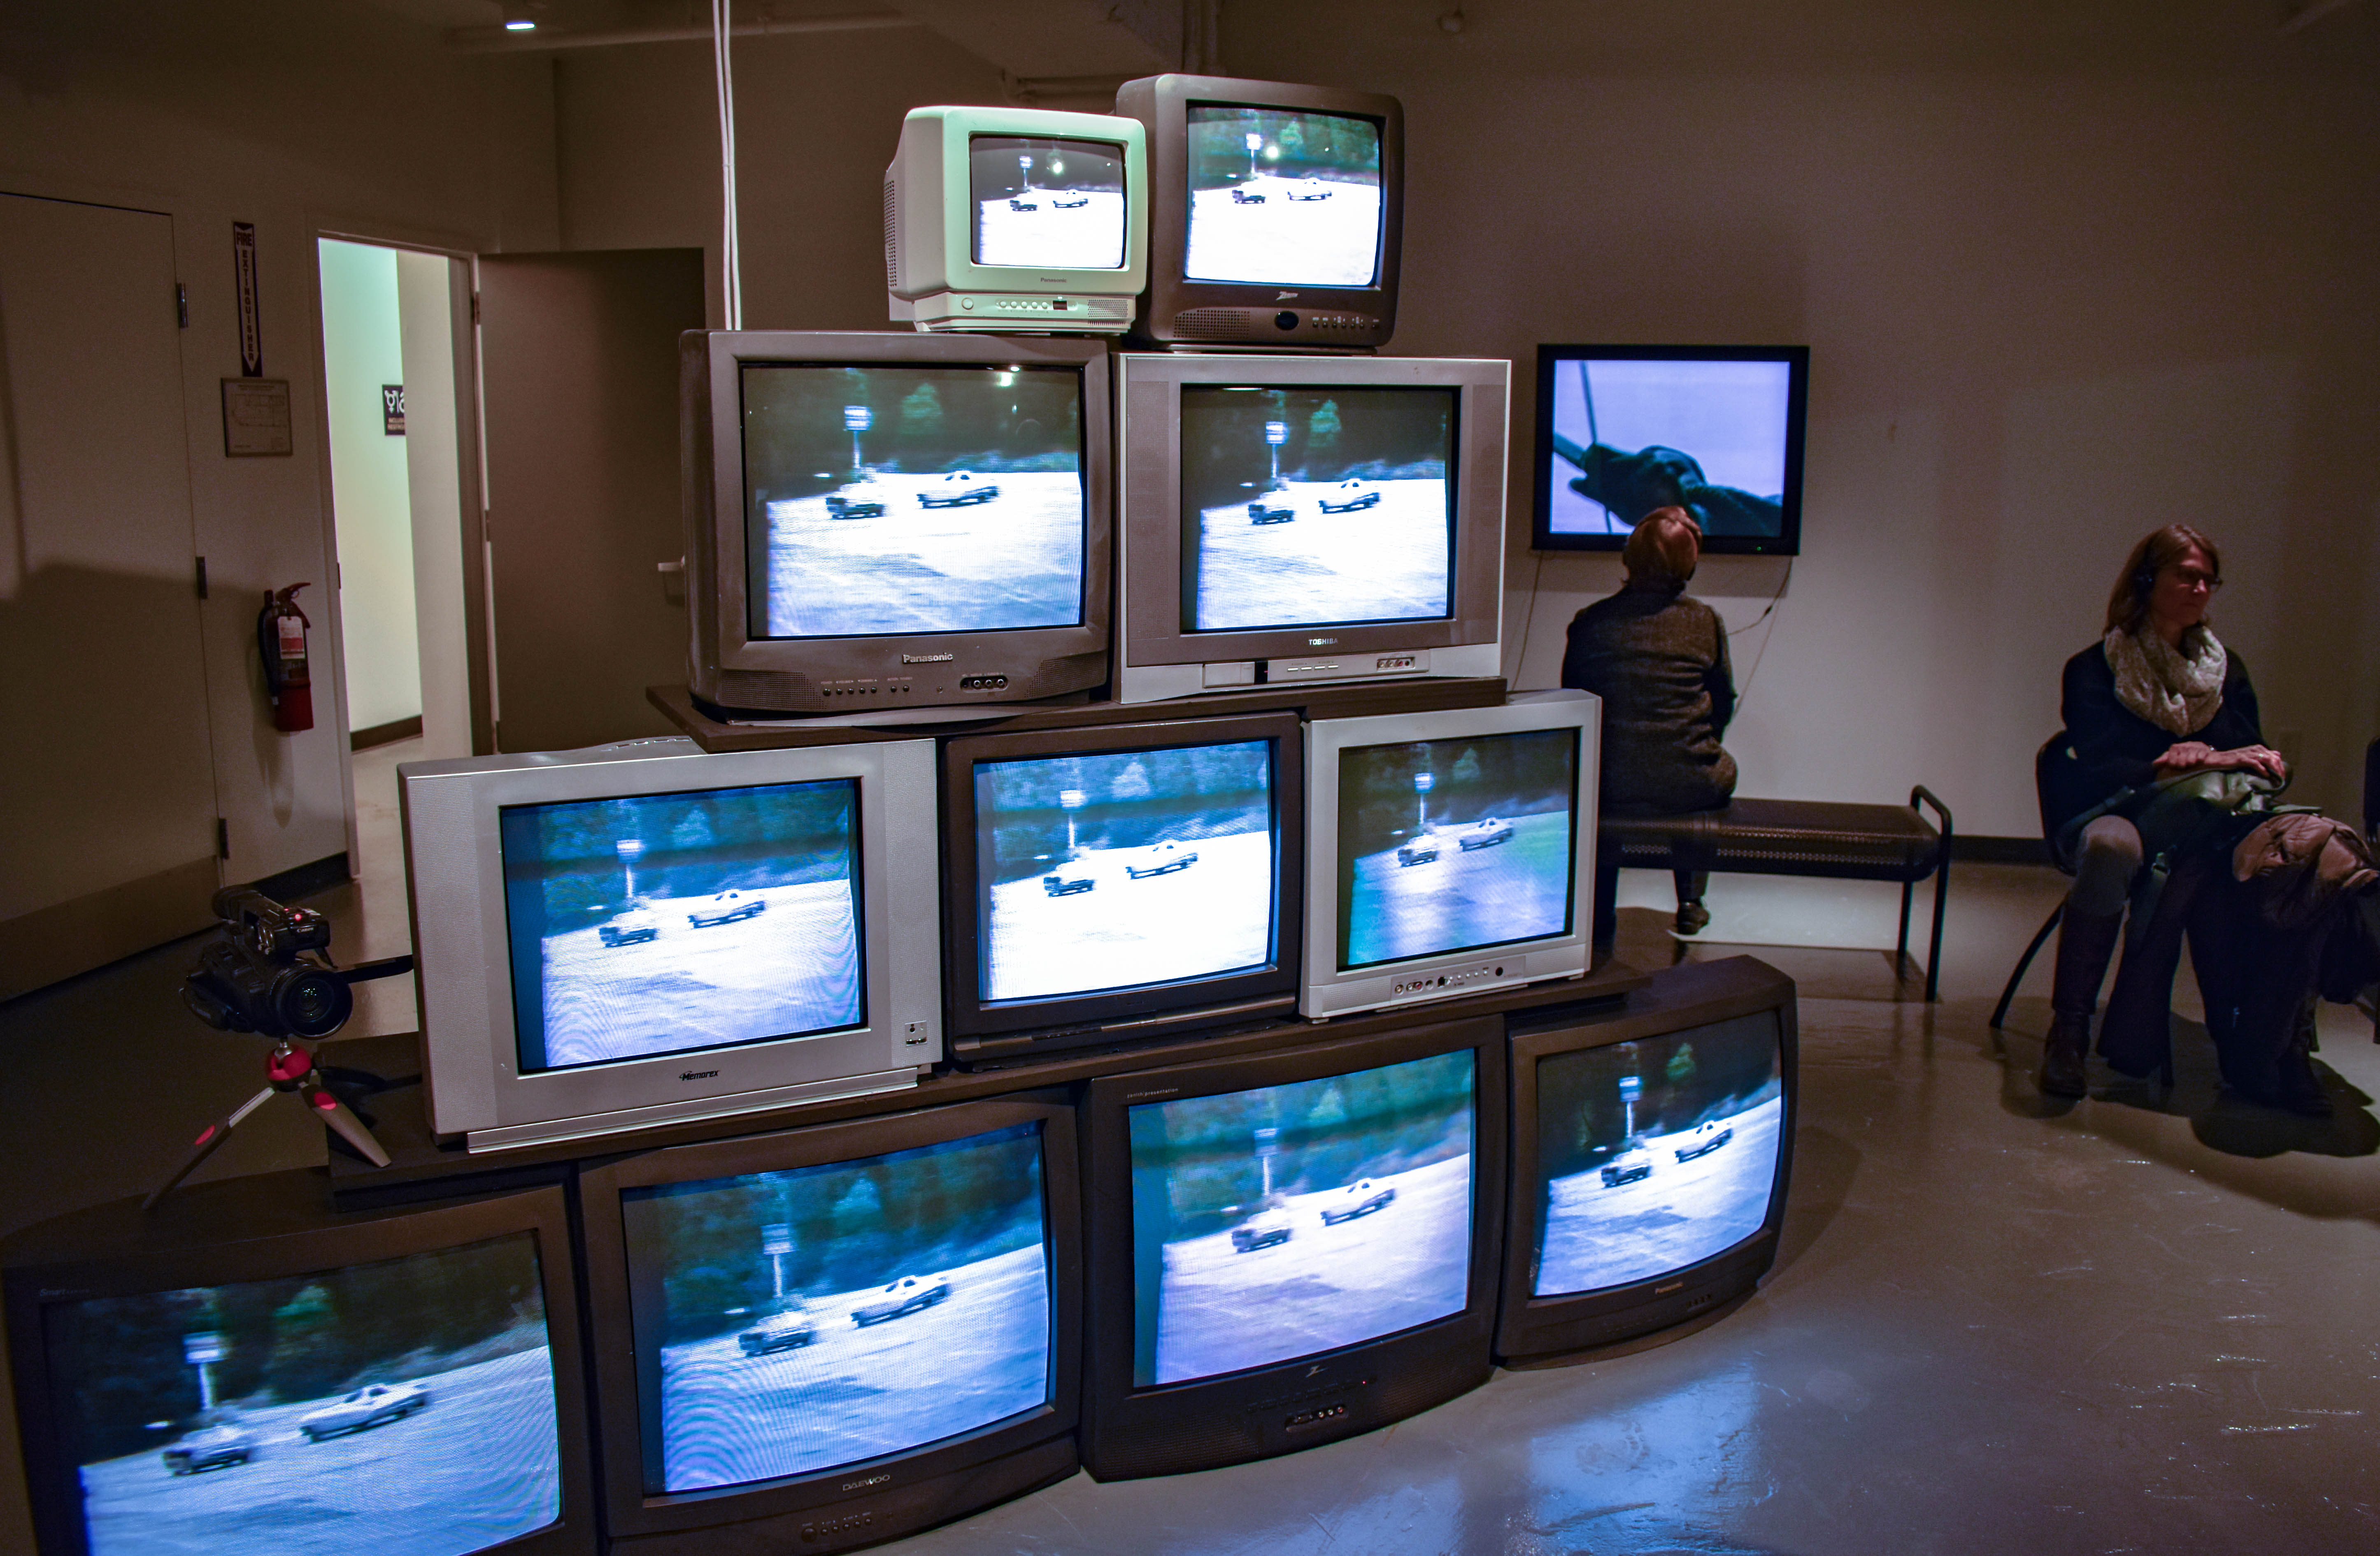 Emerson College Los Angeles >> Photos: Vision of Television at Media Art Gallery - Emerson College Today